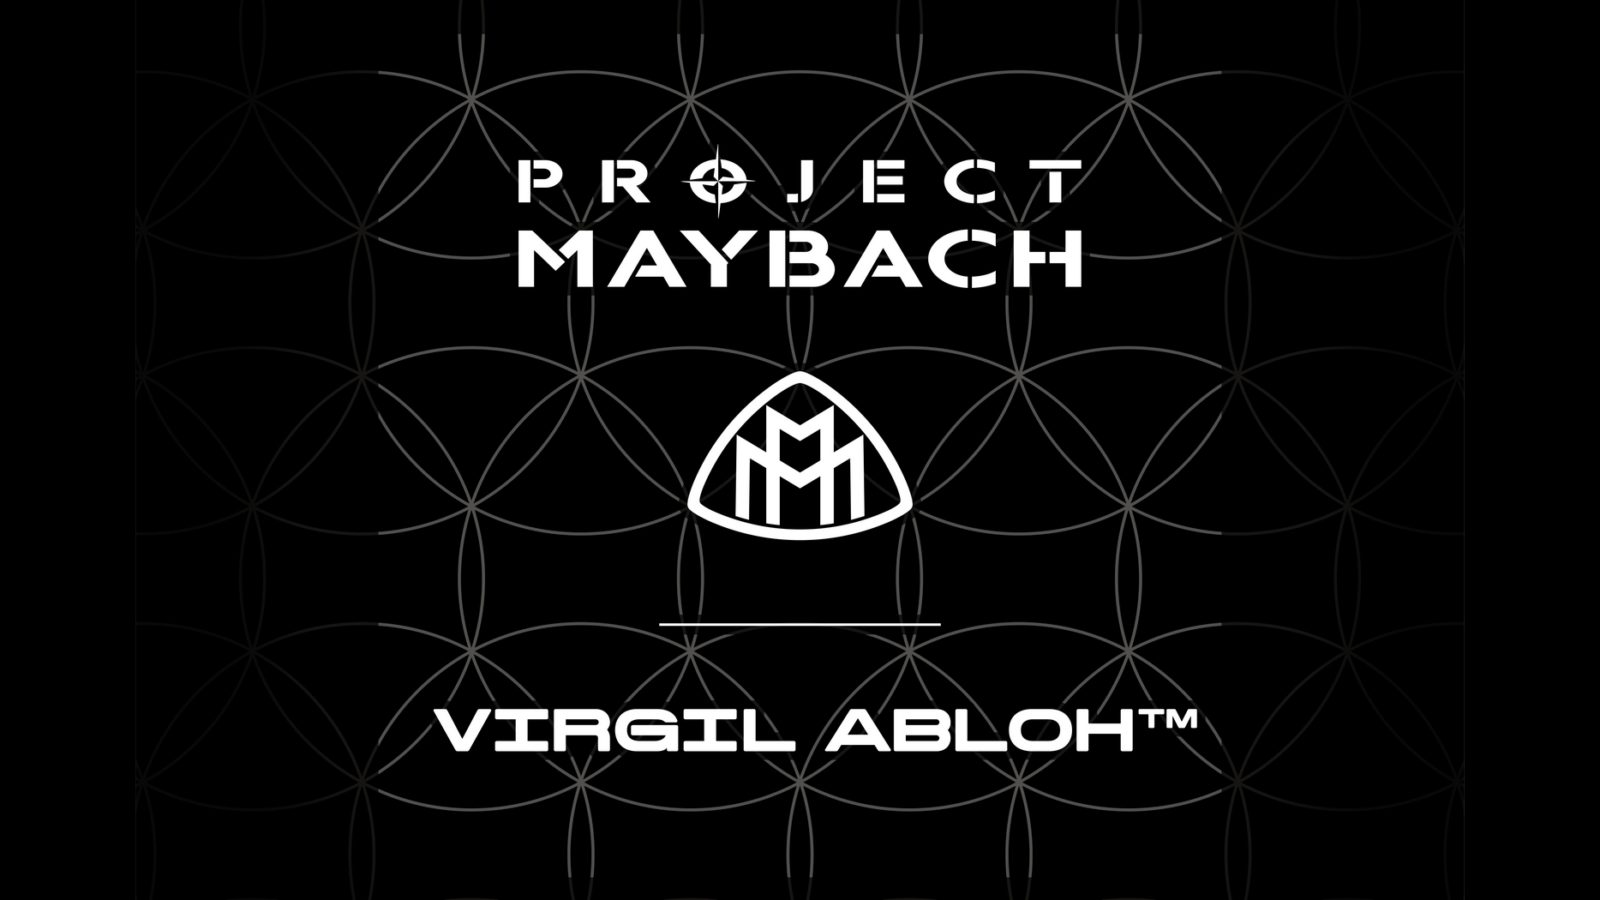 project-maybach-promises-to-celebrate-100-years-of-german-brand-with-new-concept